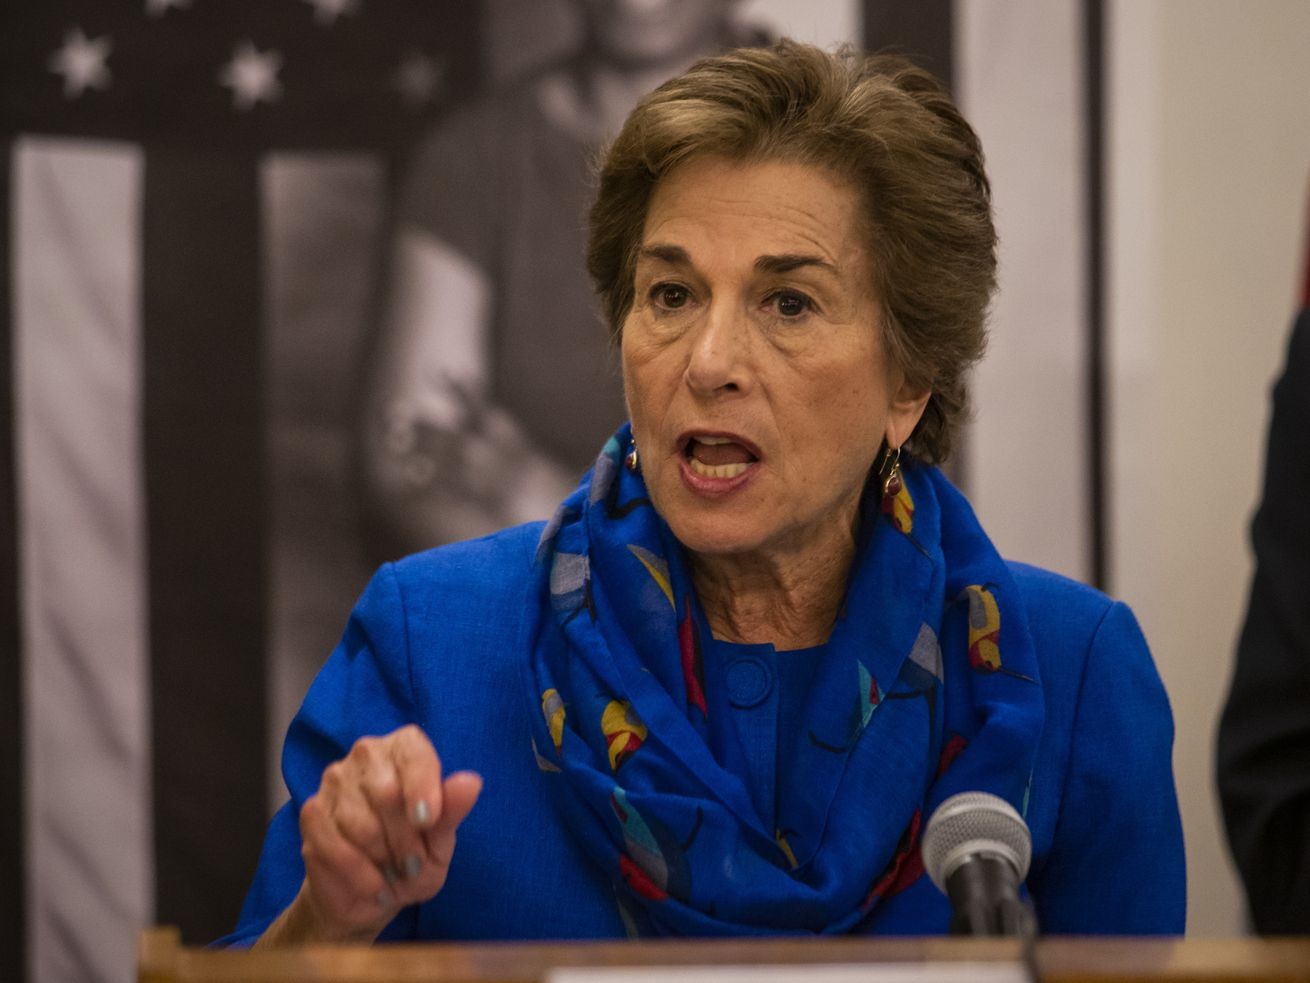 ENDORSEMENT: Janice D. Schakowsky for Congress in 9th District